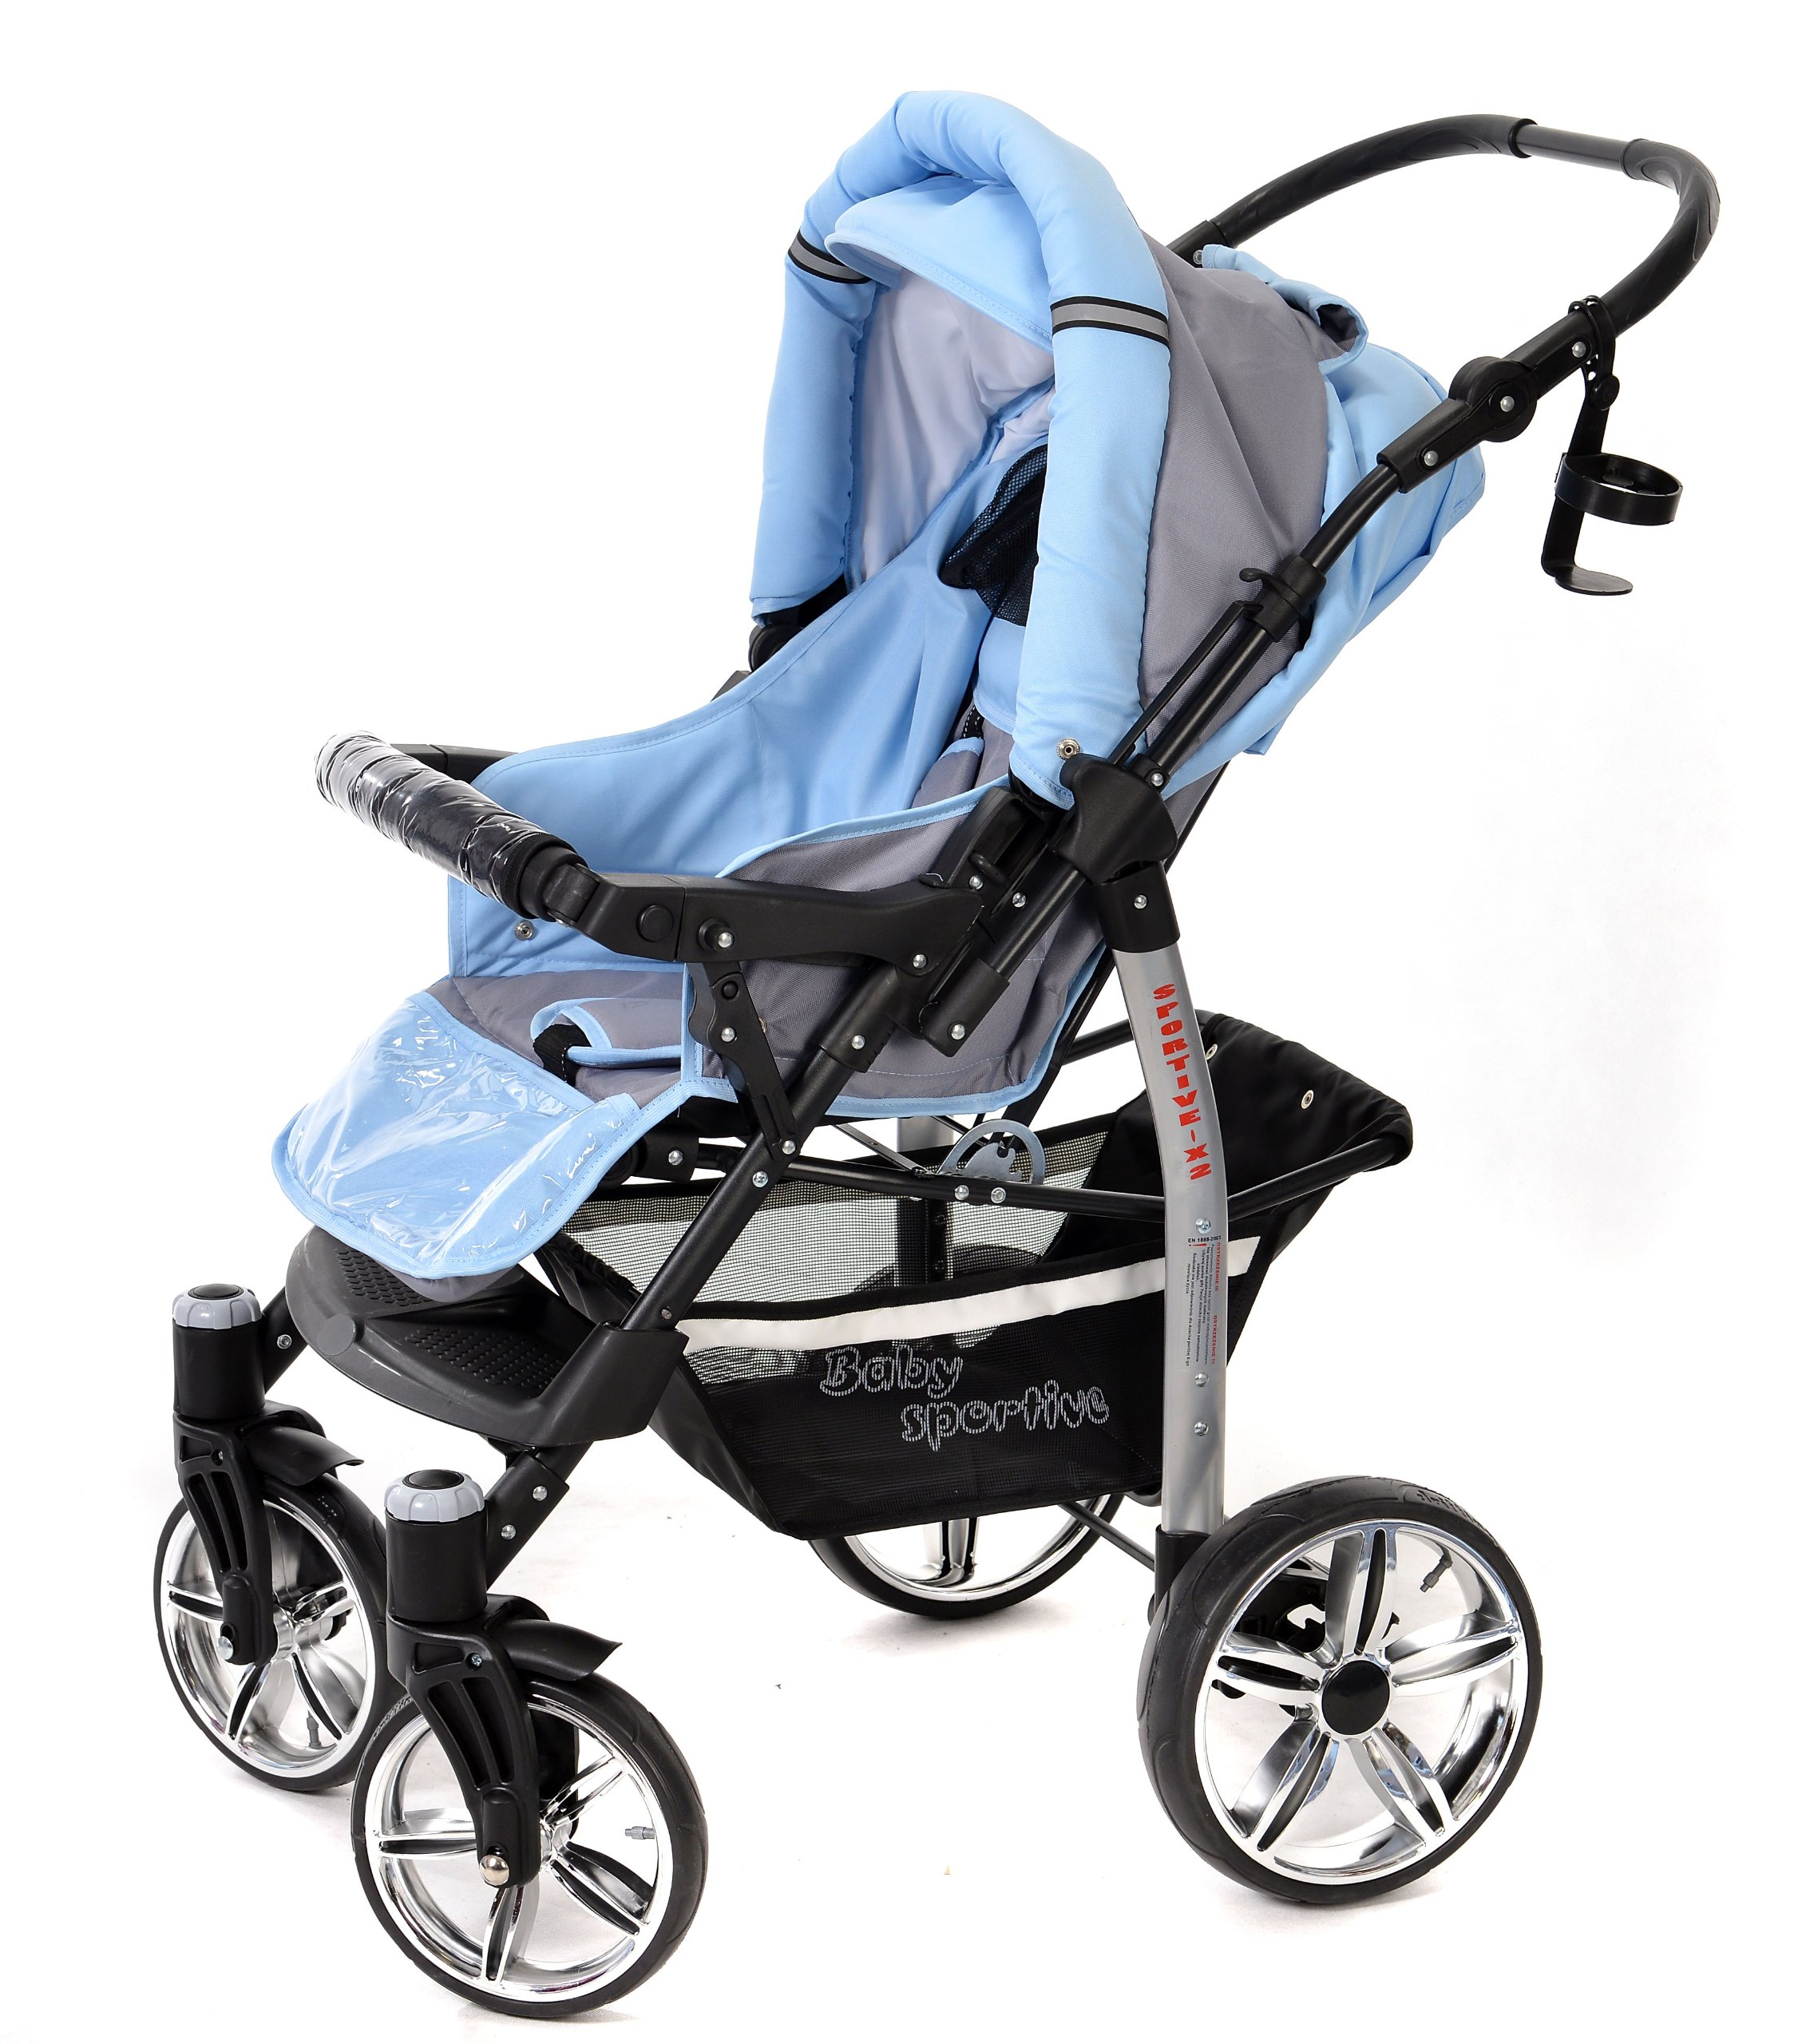 Sportive X2, 3-in-1 Travel System incl. Baby Pram with Swivel Wheels, Car Seat, Pushchair & Accessories (3-in-1 Travel System, Pale Grey & Blue)  3 in 1 Travel System All in One Set - Pram, Car Carrier Seat and Sport Buggy + Accessories: carrier bag, rain protection, mosquito net, changing mat, removable bottle holder and removable tray for your child's bits and pieces Suitable from birth, Easy Quick Folding System; Large storage basket; Turnable handle bar that allows to face or rear the drive direction; Quick release rear wheels for easy cleaning after muddy walks Front lockable 360o swivel wheels for manoeuvrability , Small sized when folded, fits into many small car trunks, Carry-cot with a removable hood, Reflective elements for better visibility 5